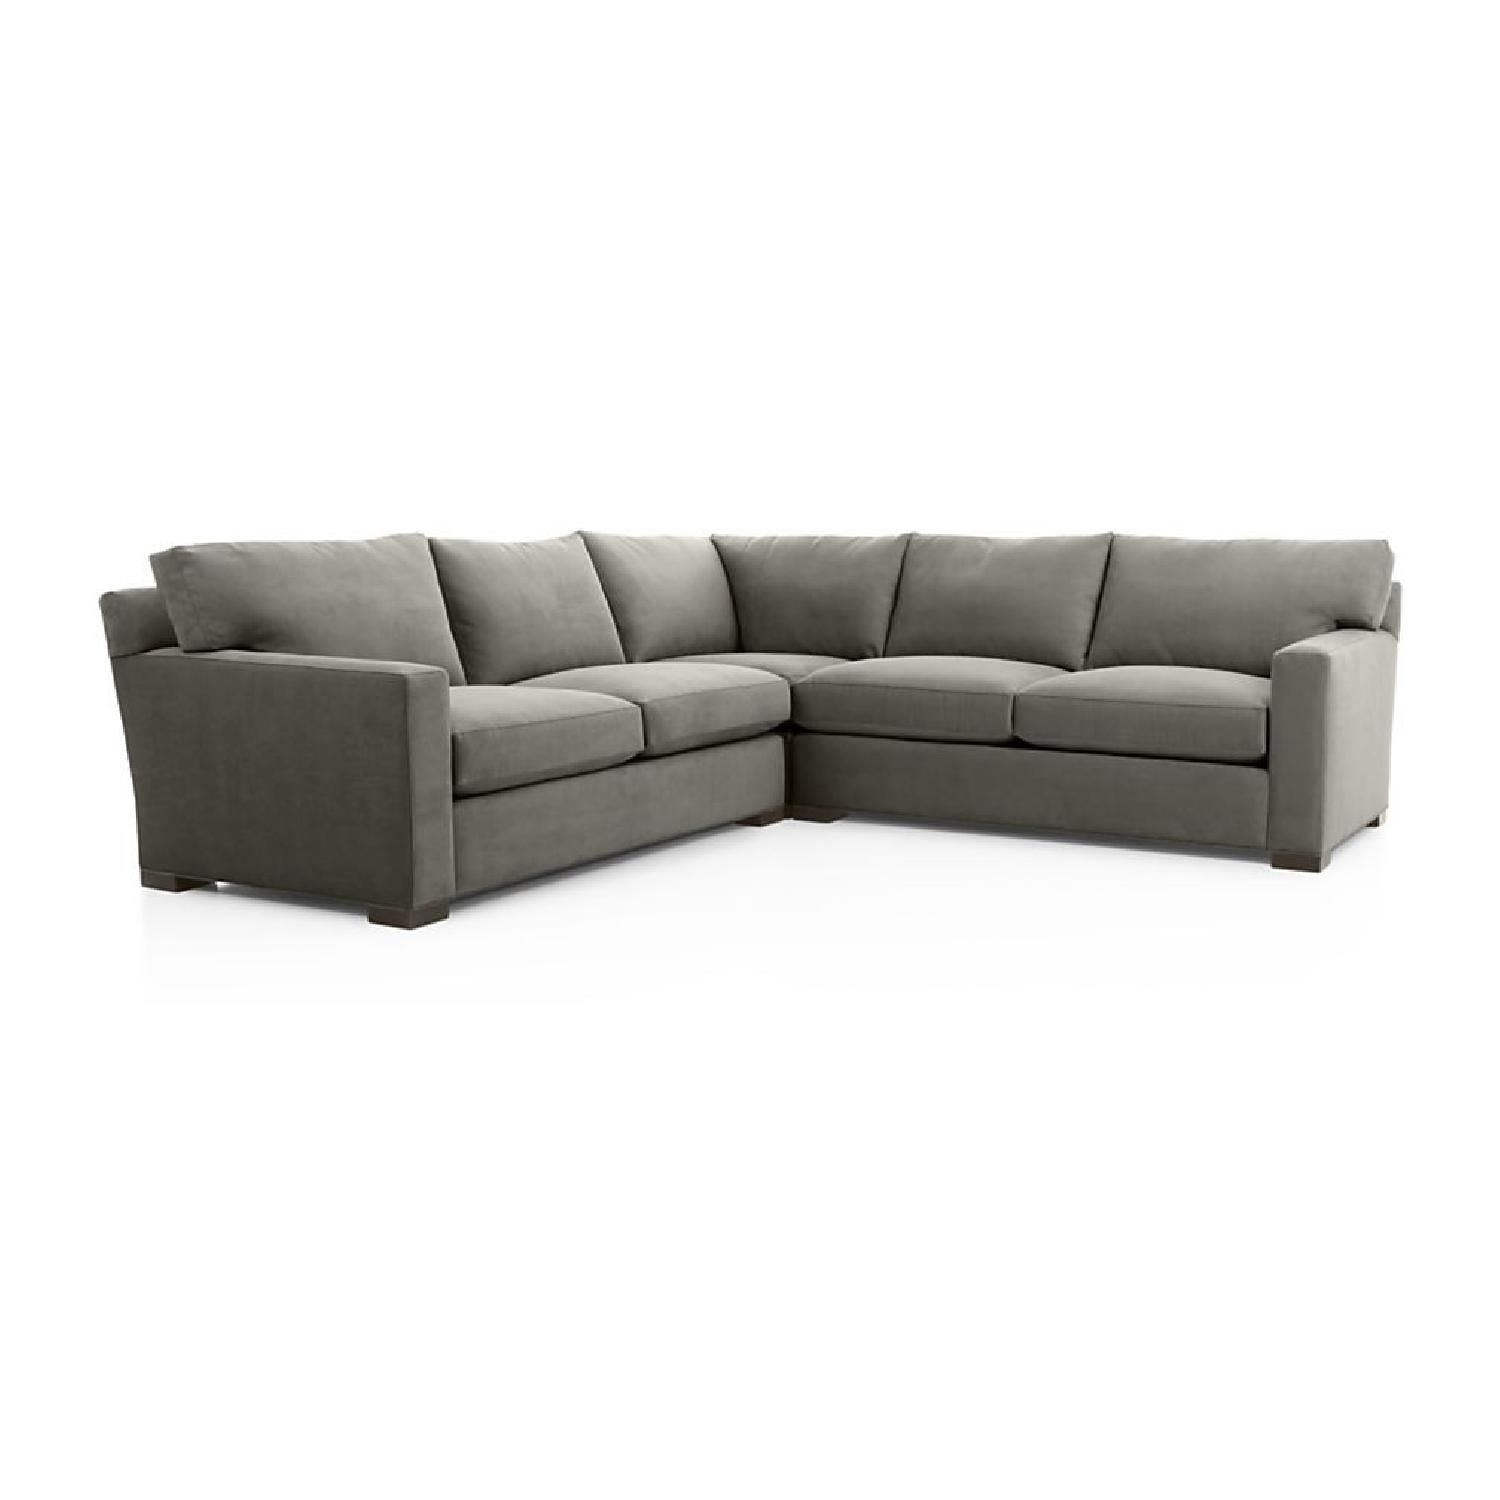 Crate & Barrel Axis Ii 3 Piece Sleeper Sectional | Sofas | Pinterest With Aidan 4 Piece Sectionals (Image 14 of 25)